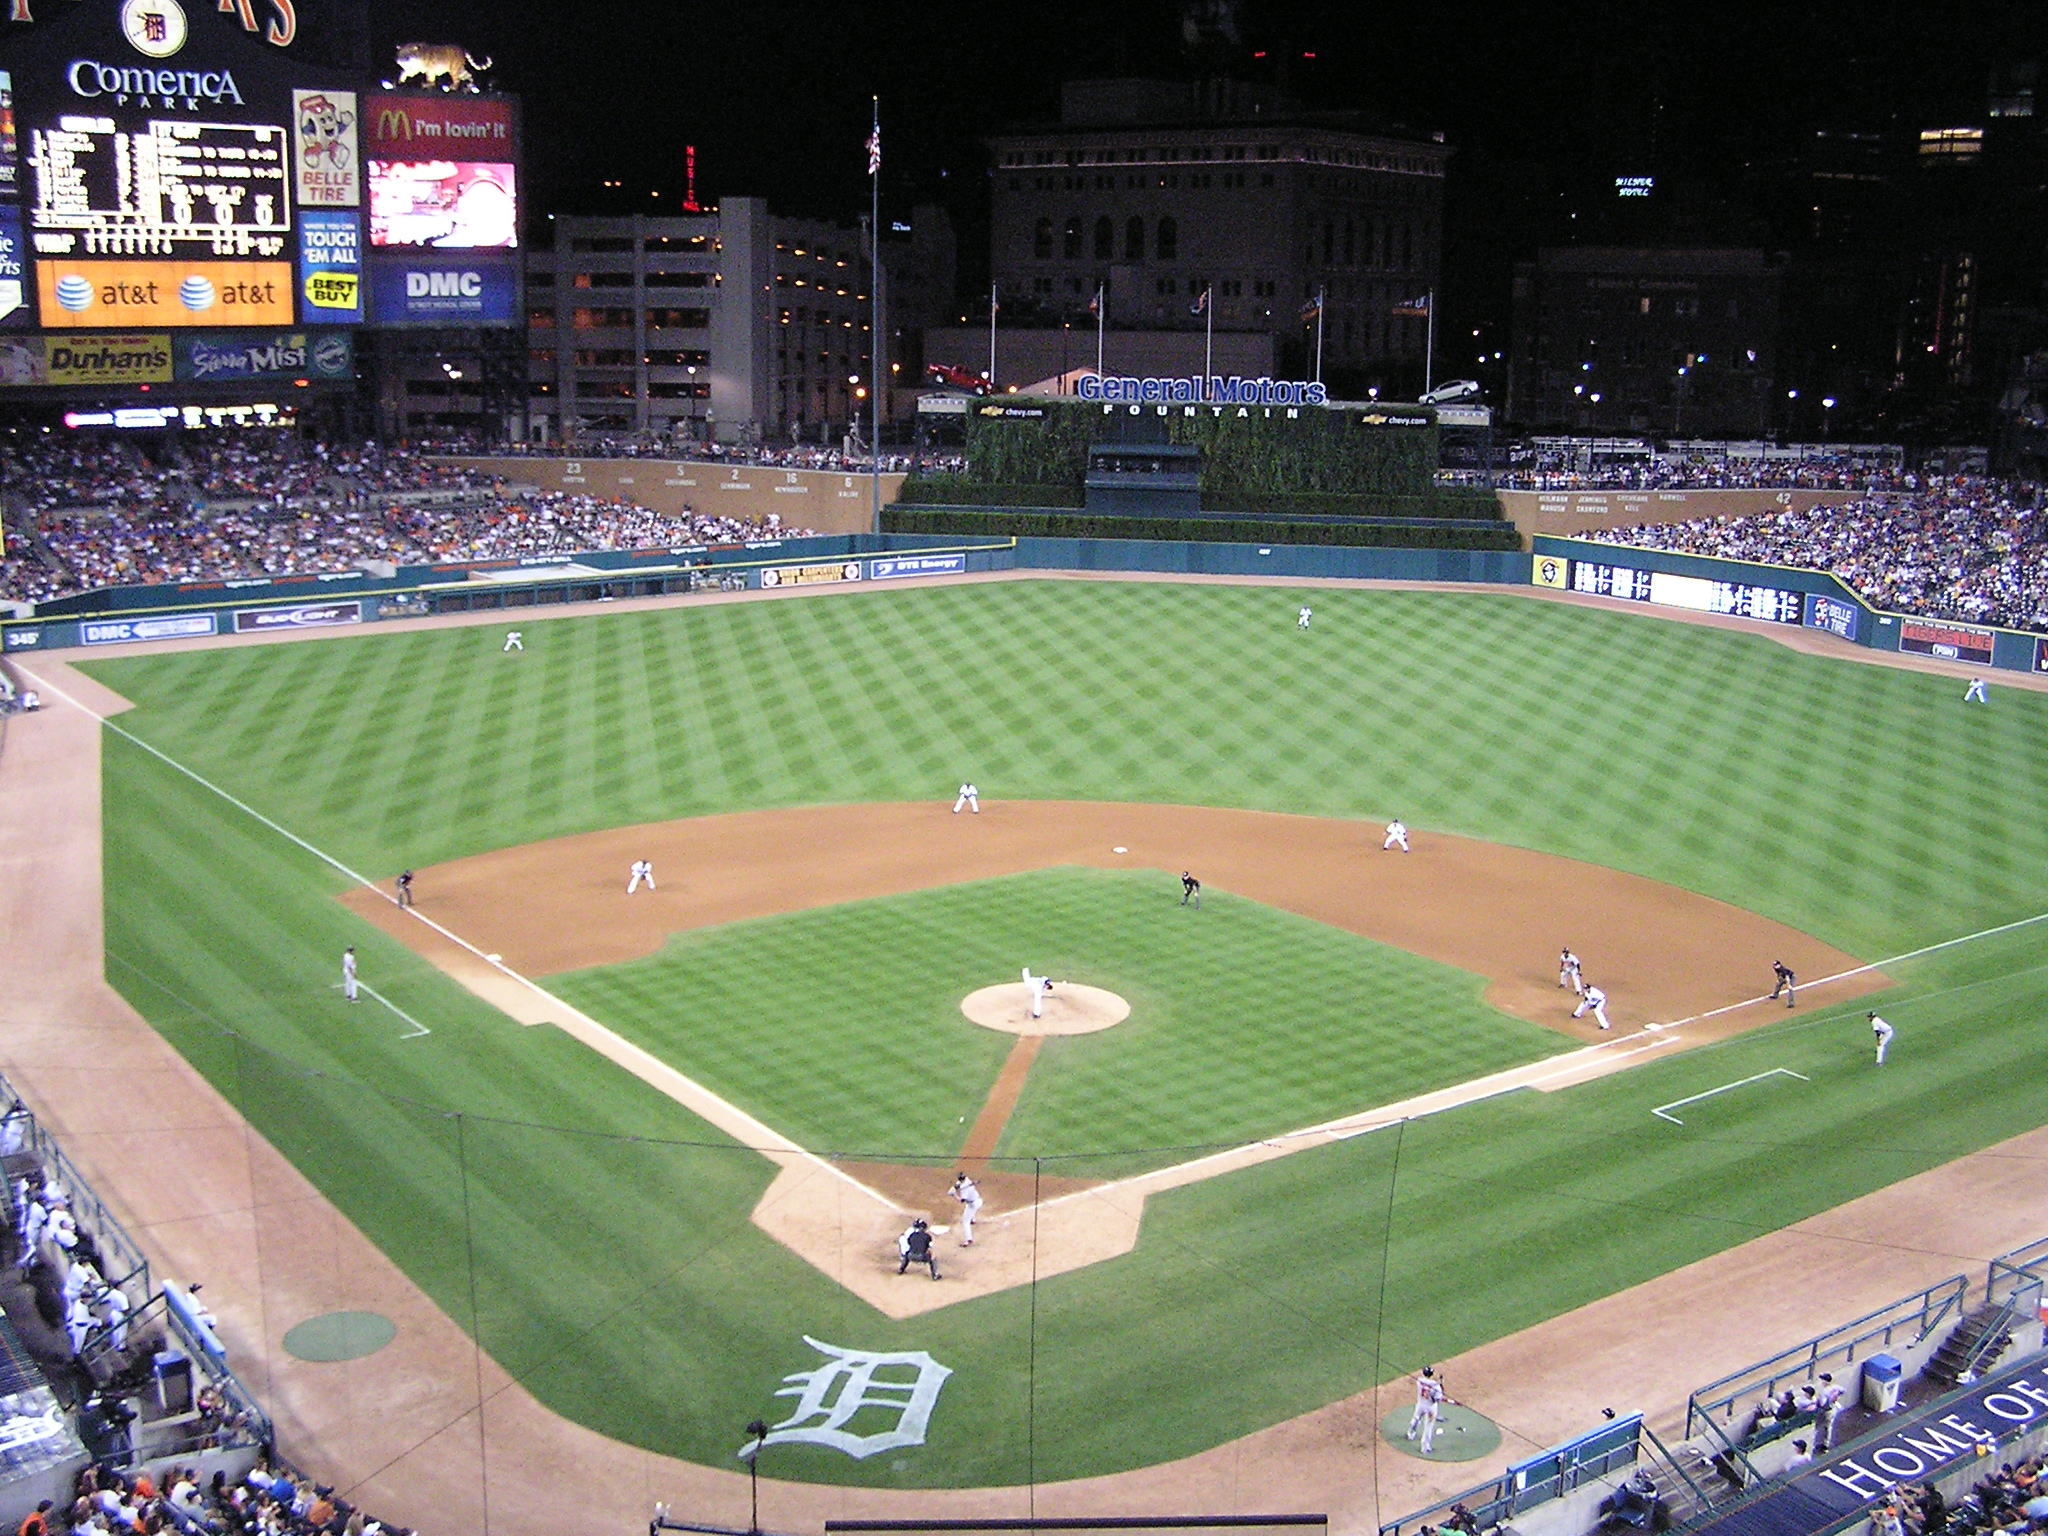 Game Action - Comerica Park - Home of the Tigers